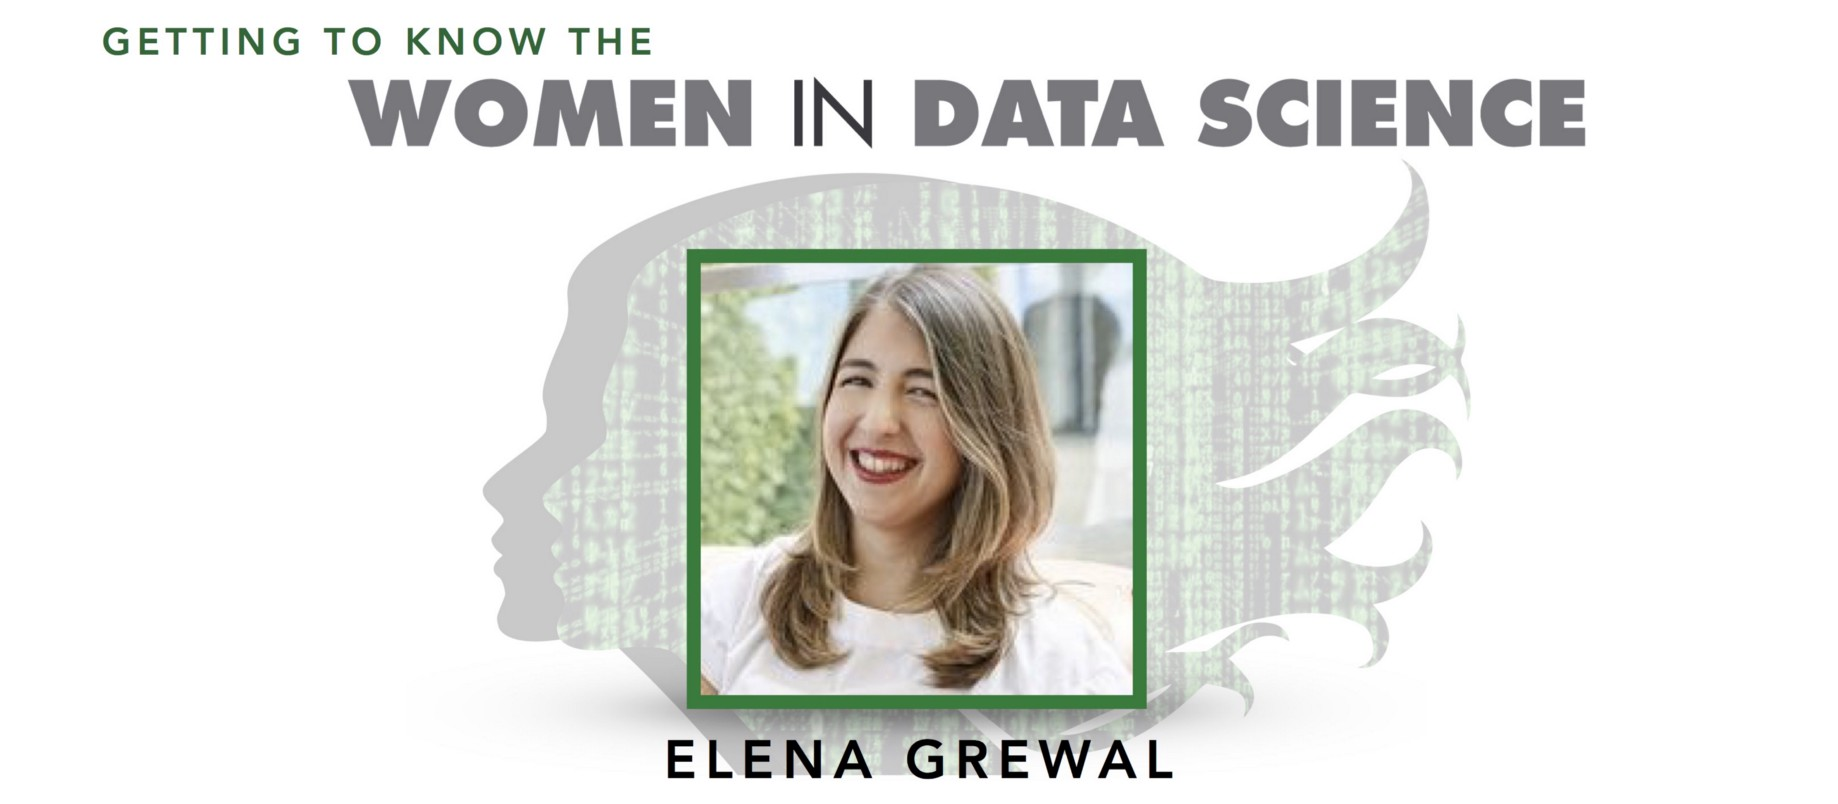 Getting to Know the Women in Data Science: Elena Grewal